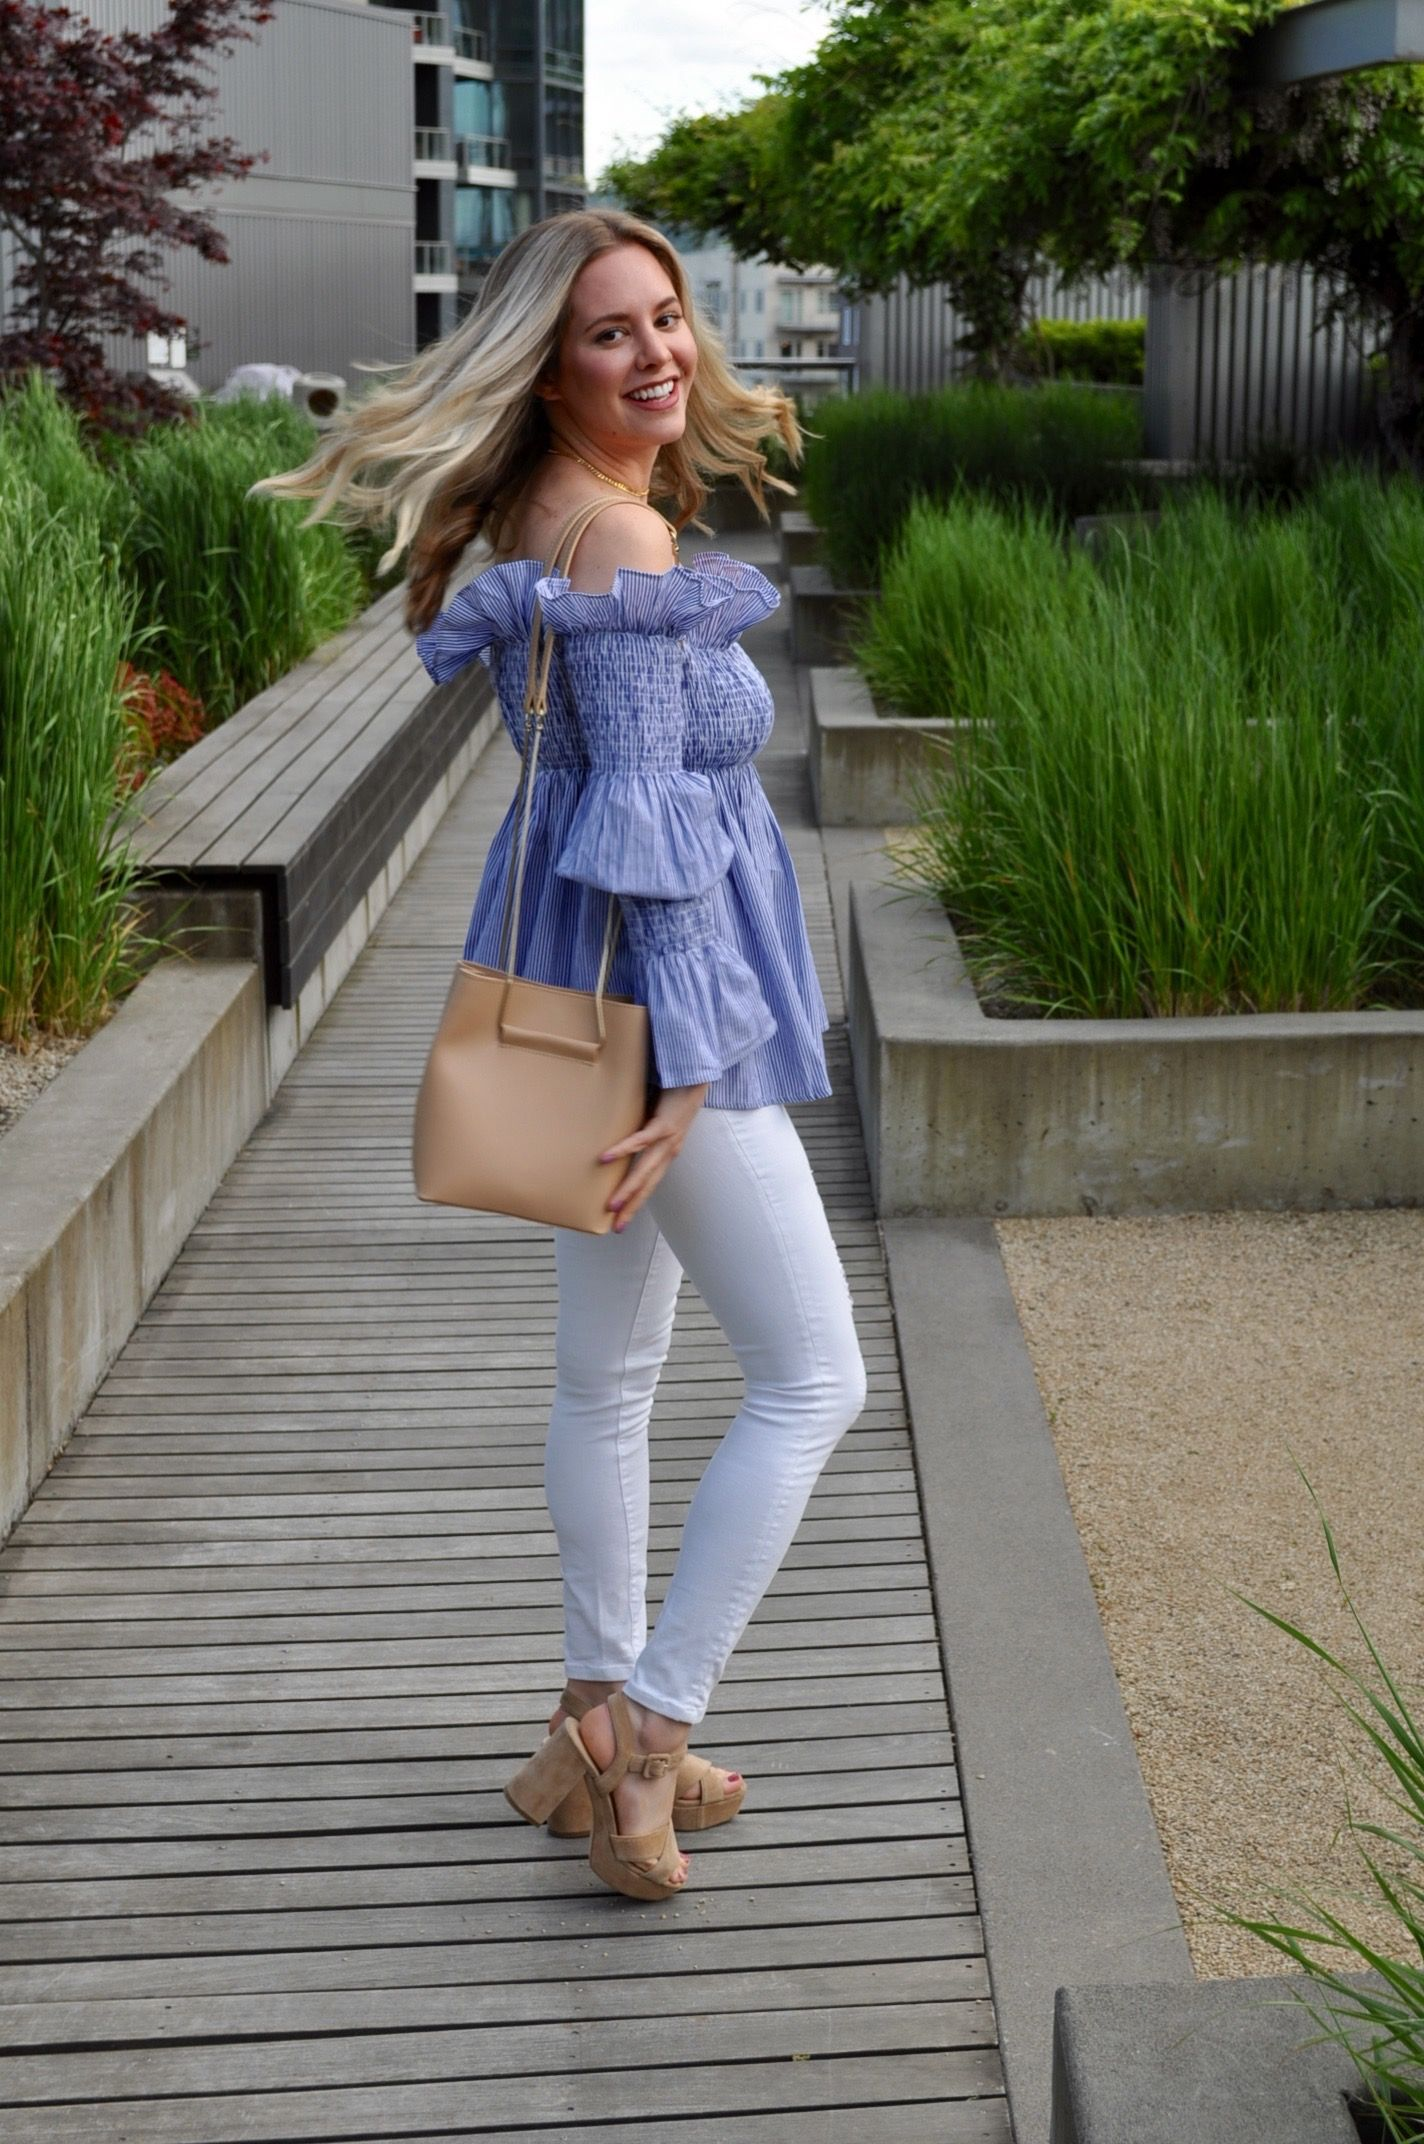 bb844844f0917 Off the shoulder ruffle pinstripe top and white jeans (via Confessions of a Product  Junkie blog.)